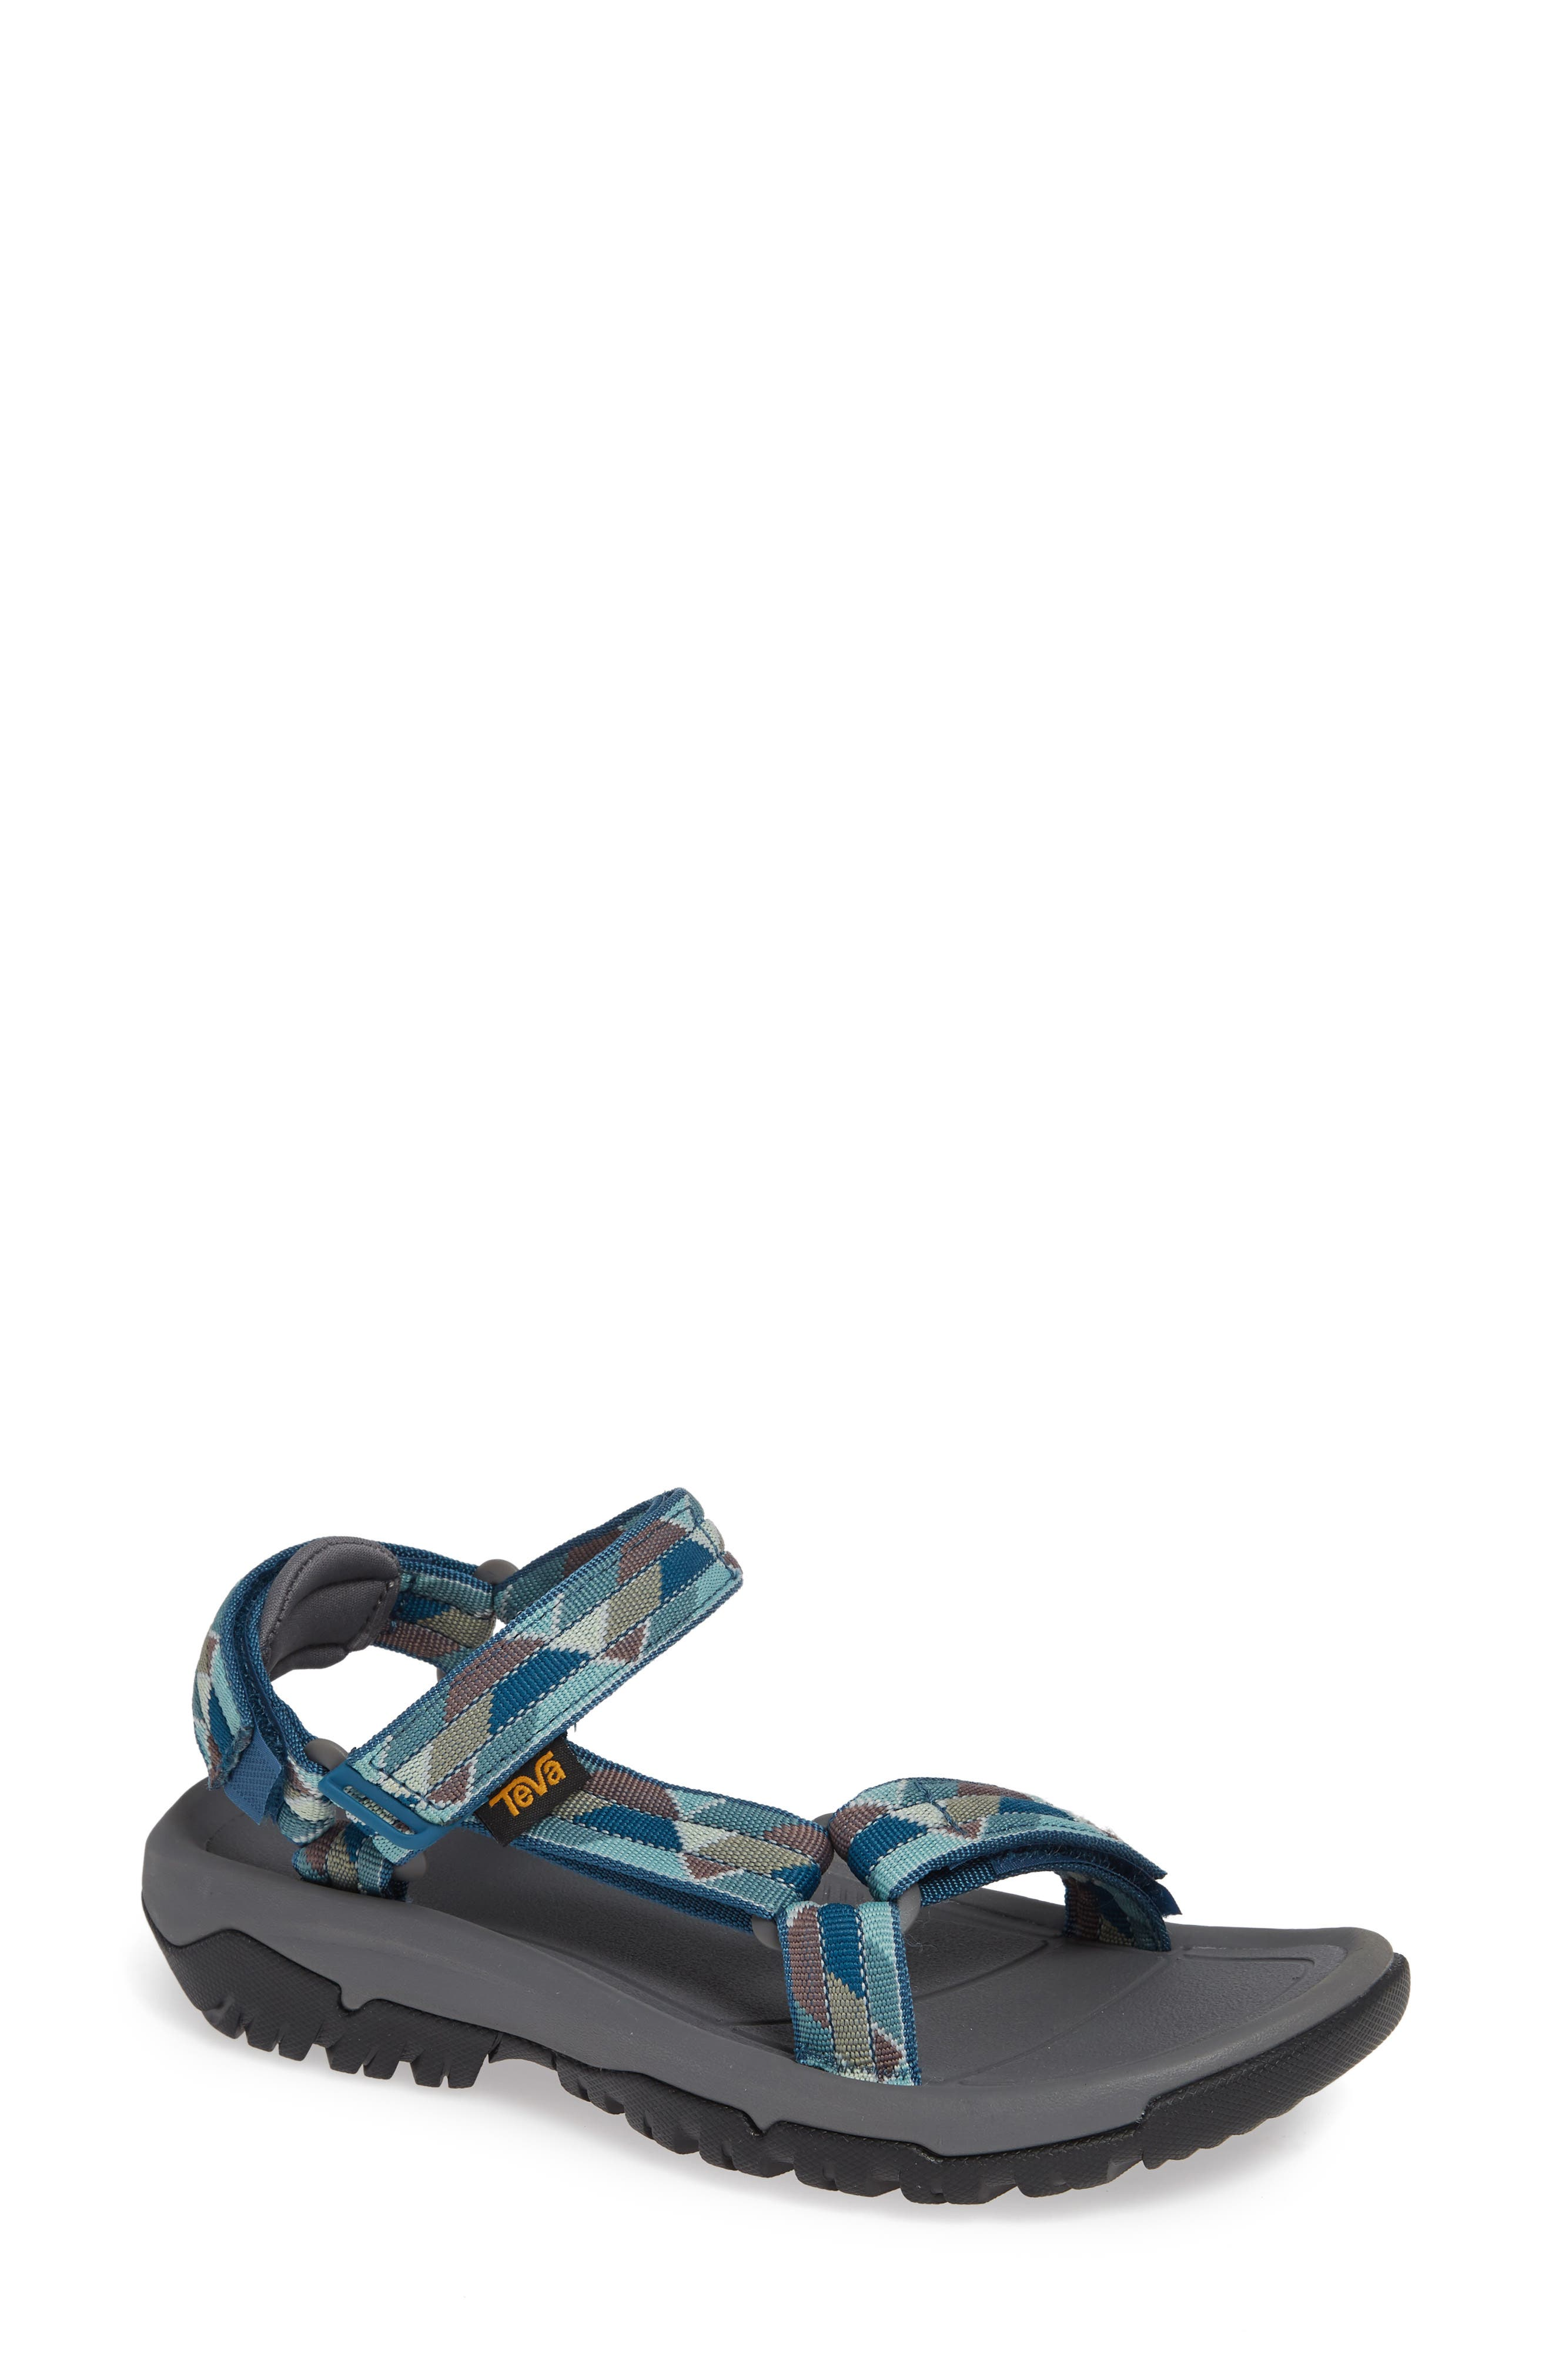 Hurricane XLT 2 Sandal,                         Main,                         color, BLUE FABRIC